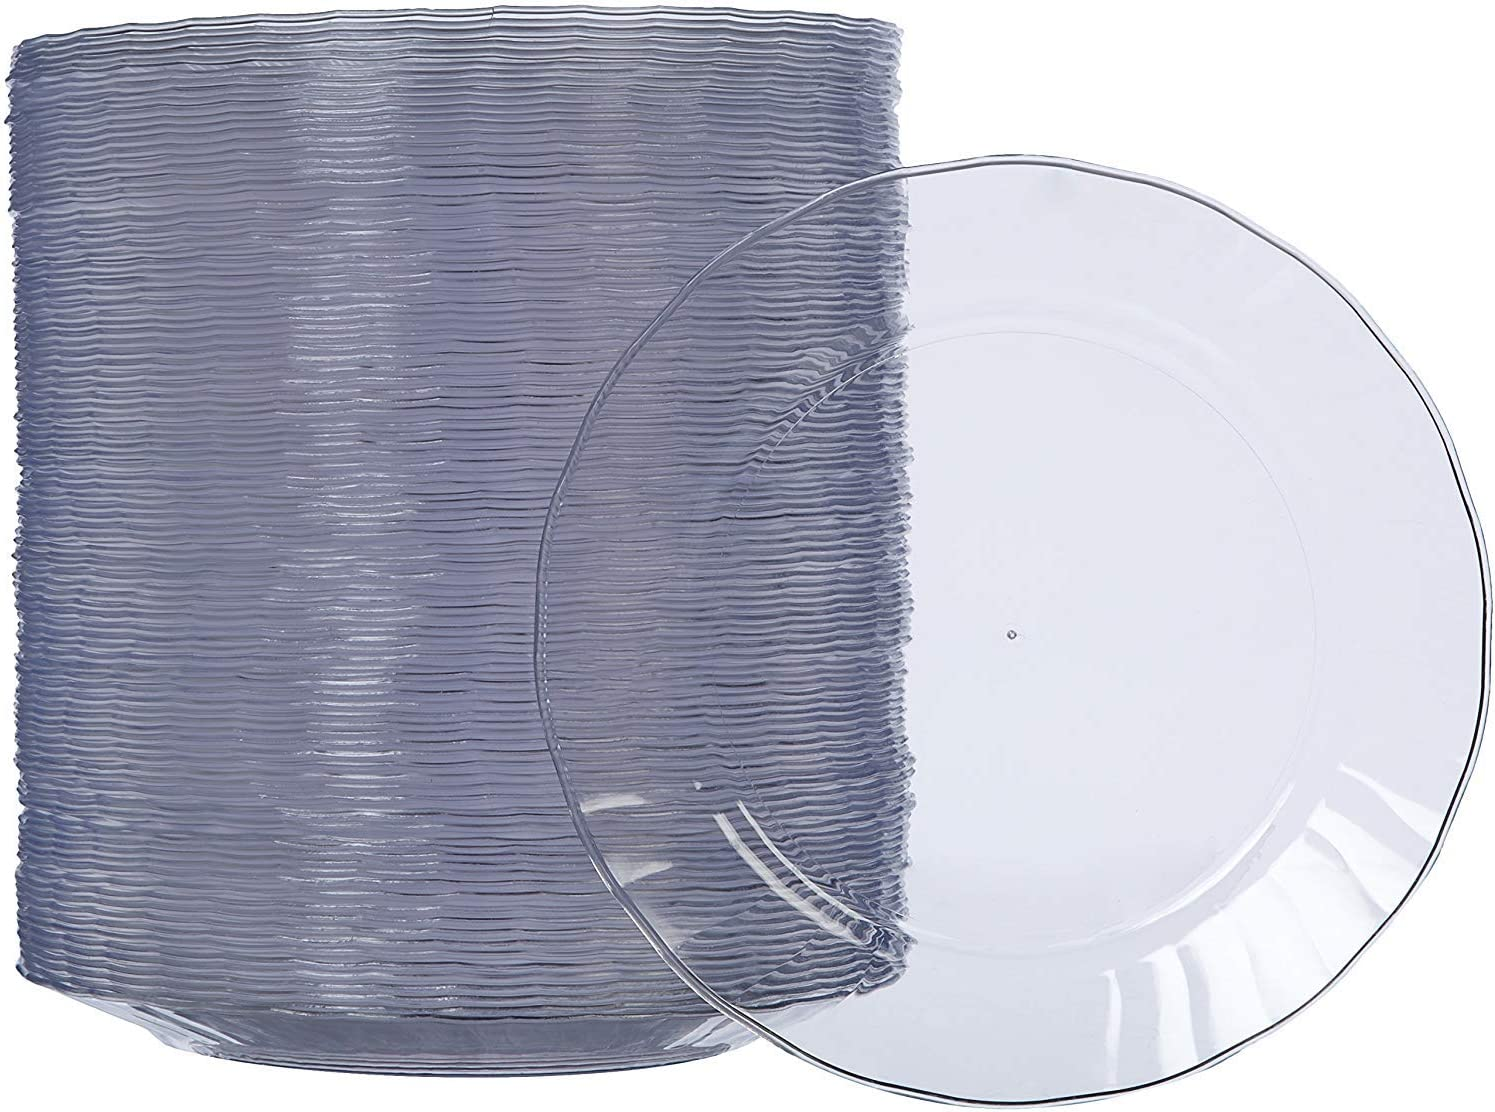 Amazon Basics Disposable Clear Plastic Plates, 100-Pack, 7.5-inch